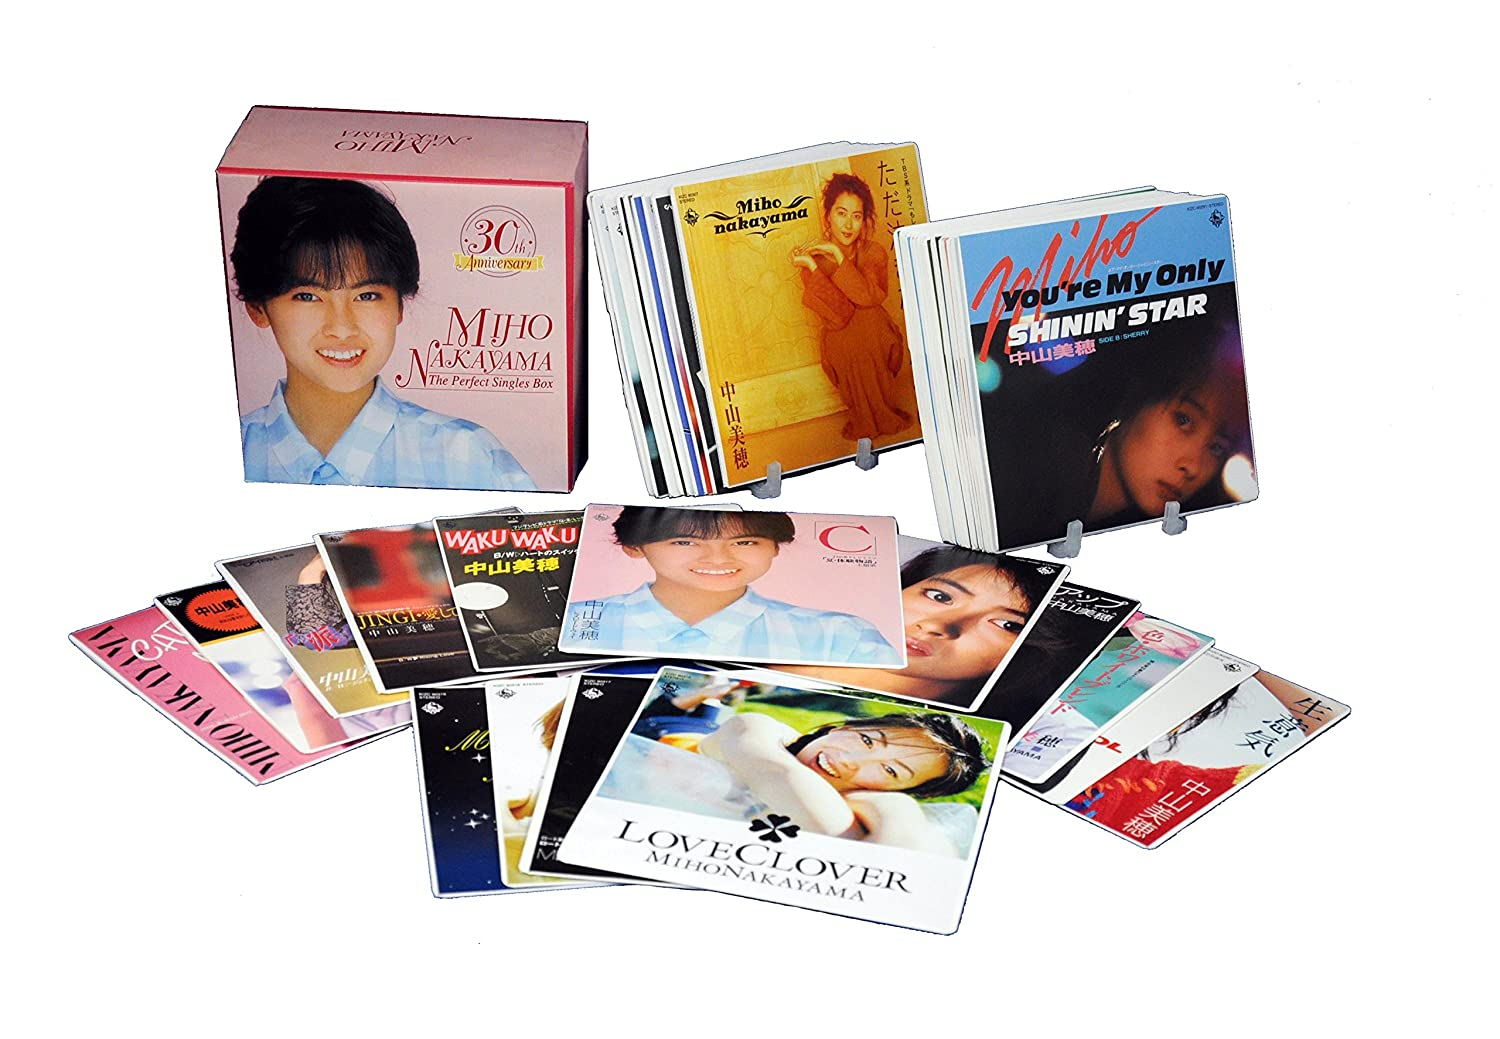 30th Anniversary THE PERFECT SINGLES BOX(DVD付) CD+DVD, Limited Edition                                                                                                                                                                                                                                                                                                                                                                                                <span class=